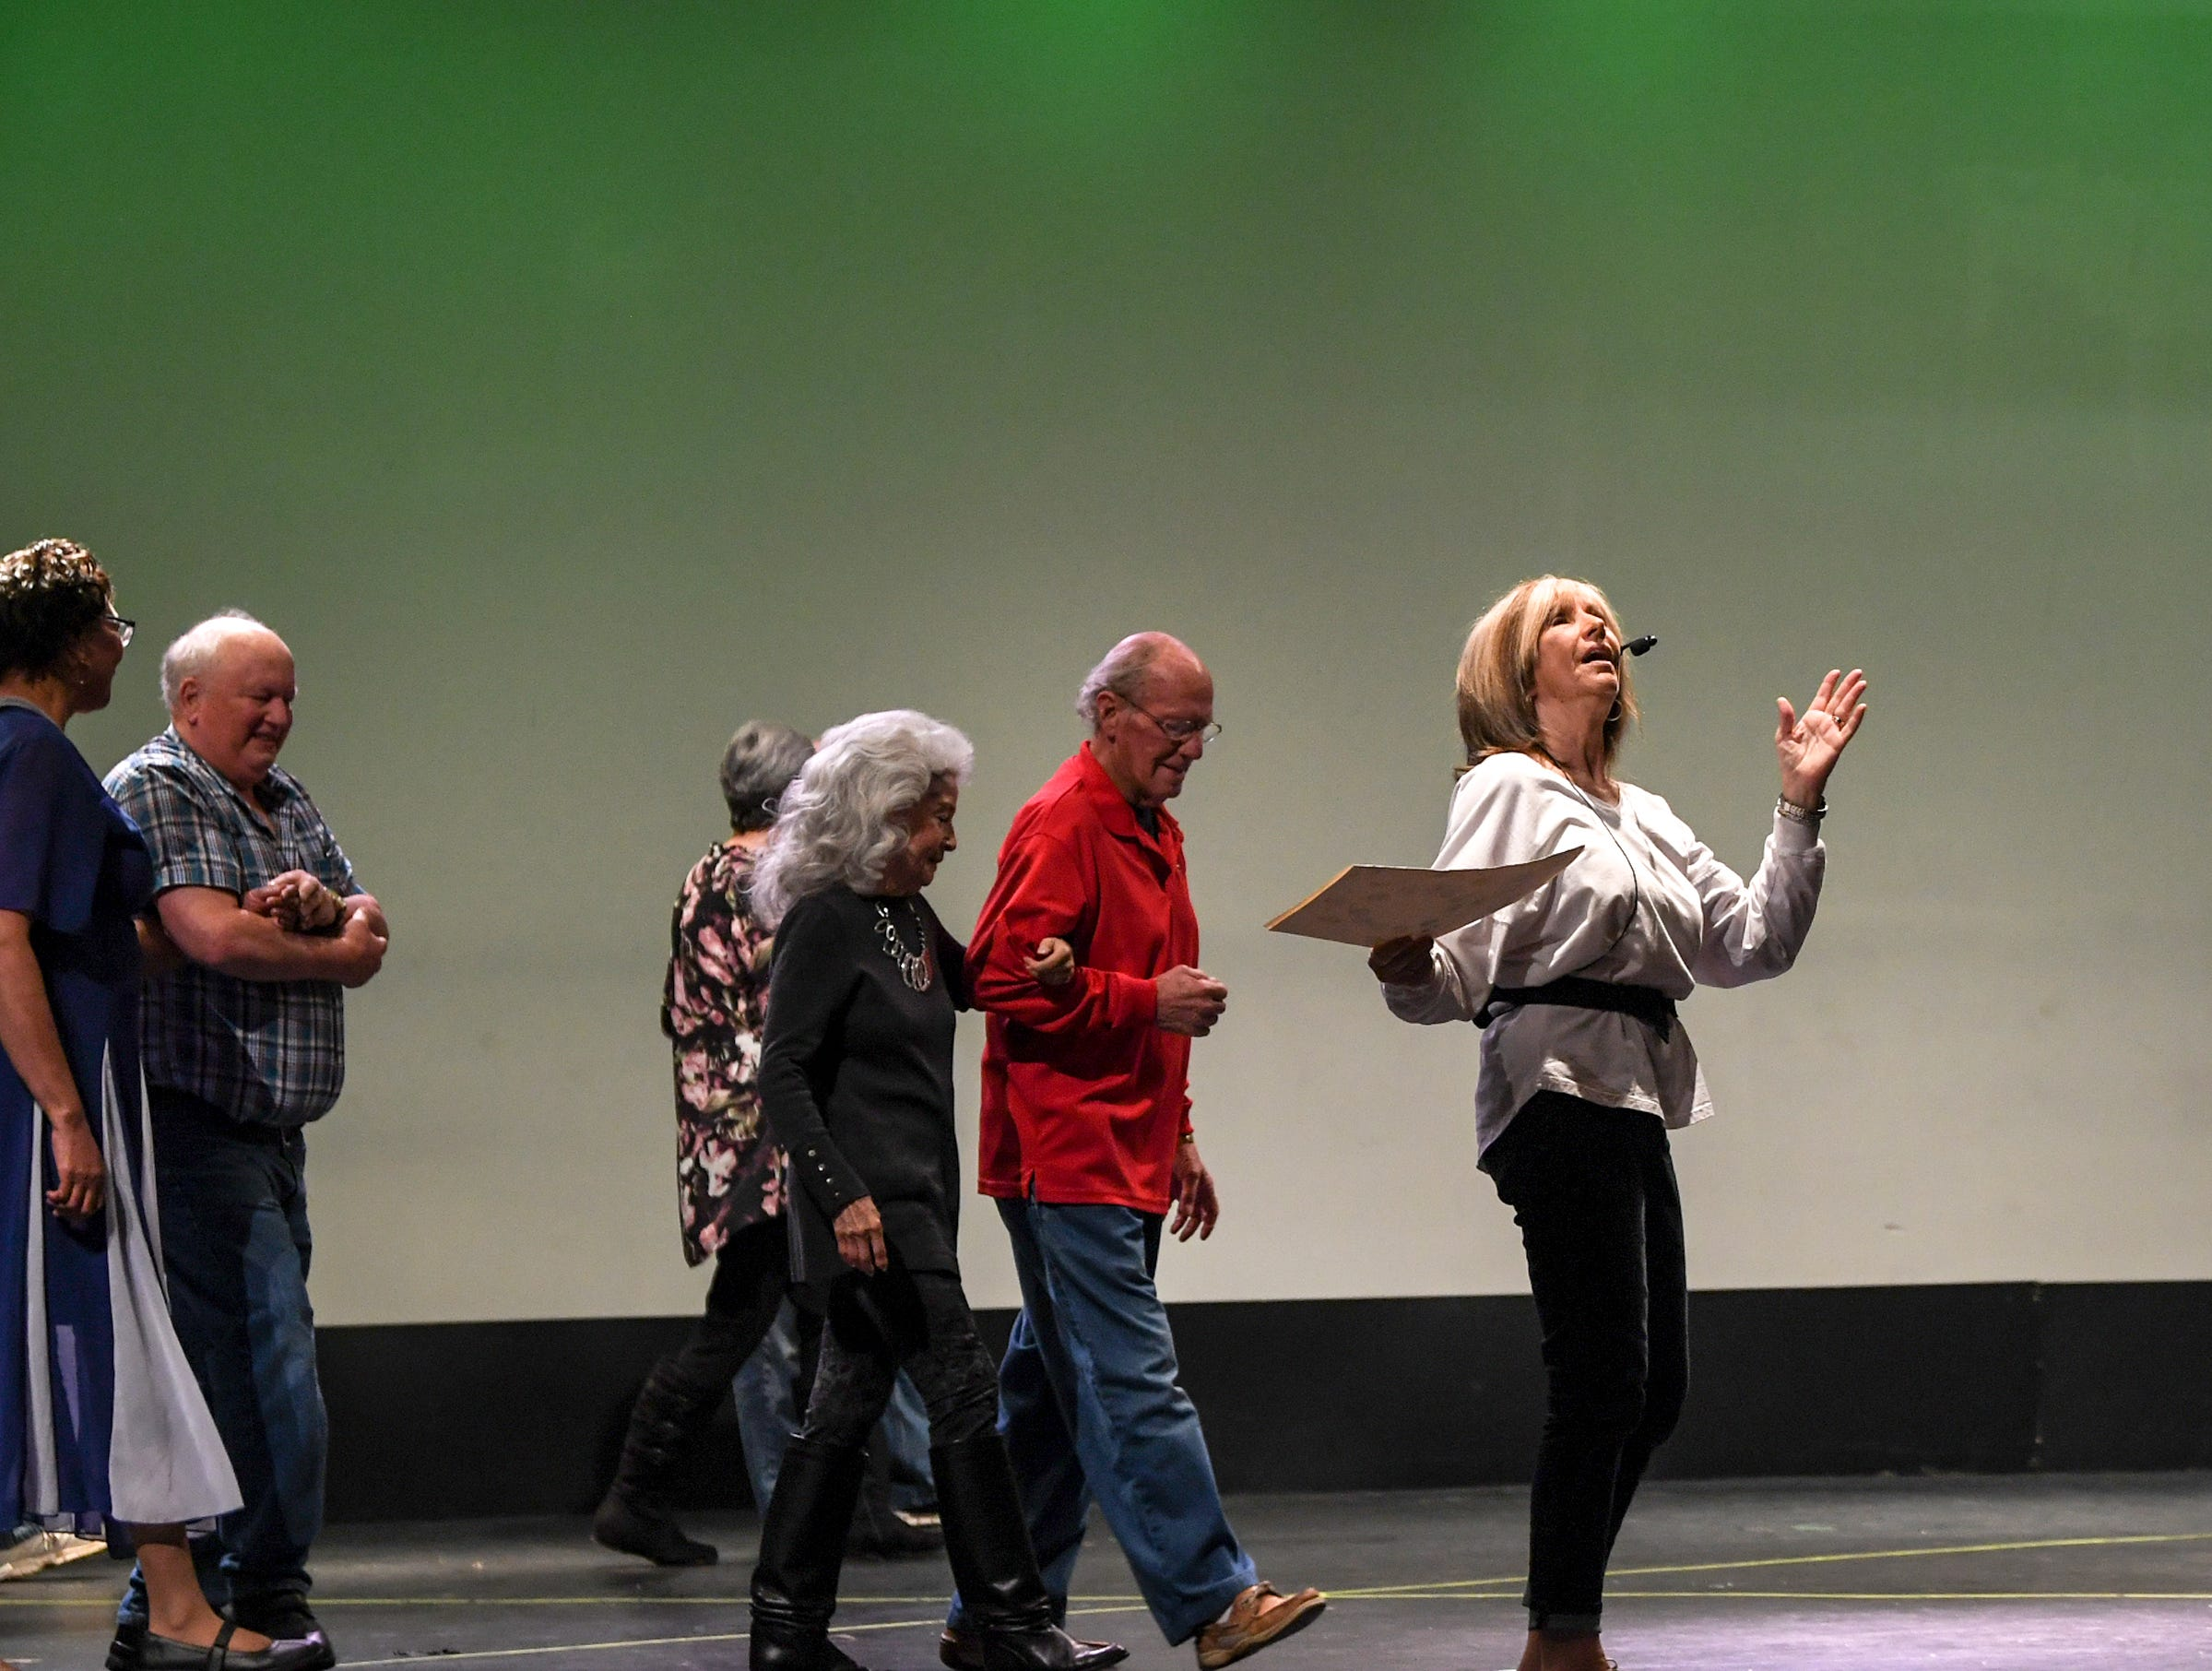 """Annette Martin, right, directs Anderson Senior Follies, in their 30th year at the Anderson University Fine Arts Center's Henderson Auditorium in February. The show, a song, dance, and comedy performance named """"A Class Act""""  is led by retiring director Martin and incoming director Mary Nickles. Martin said the show is a whimsical look at being a senior, with vintage, patriotic, and classy people."""